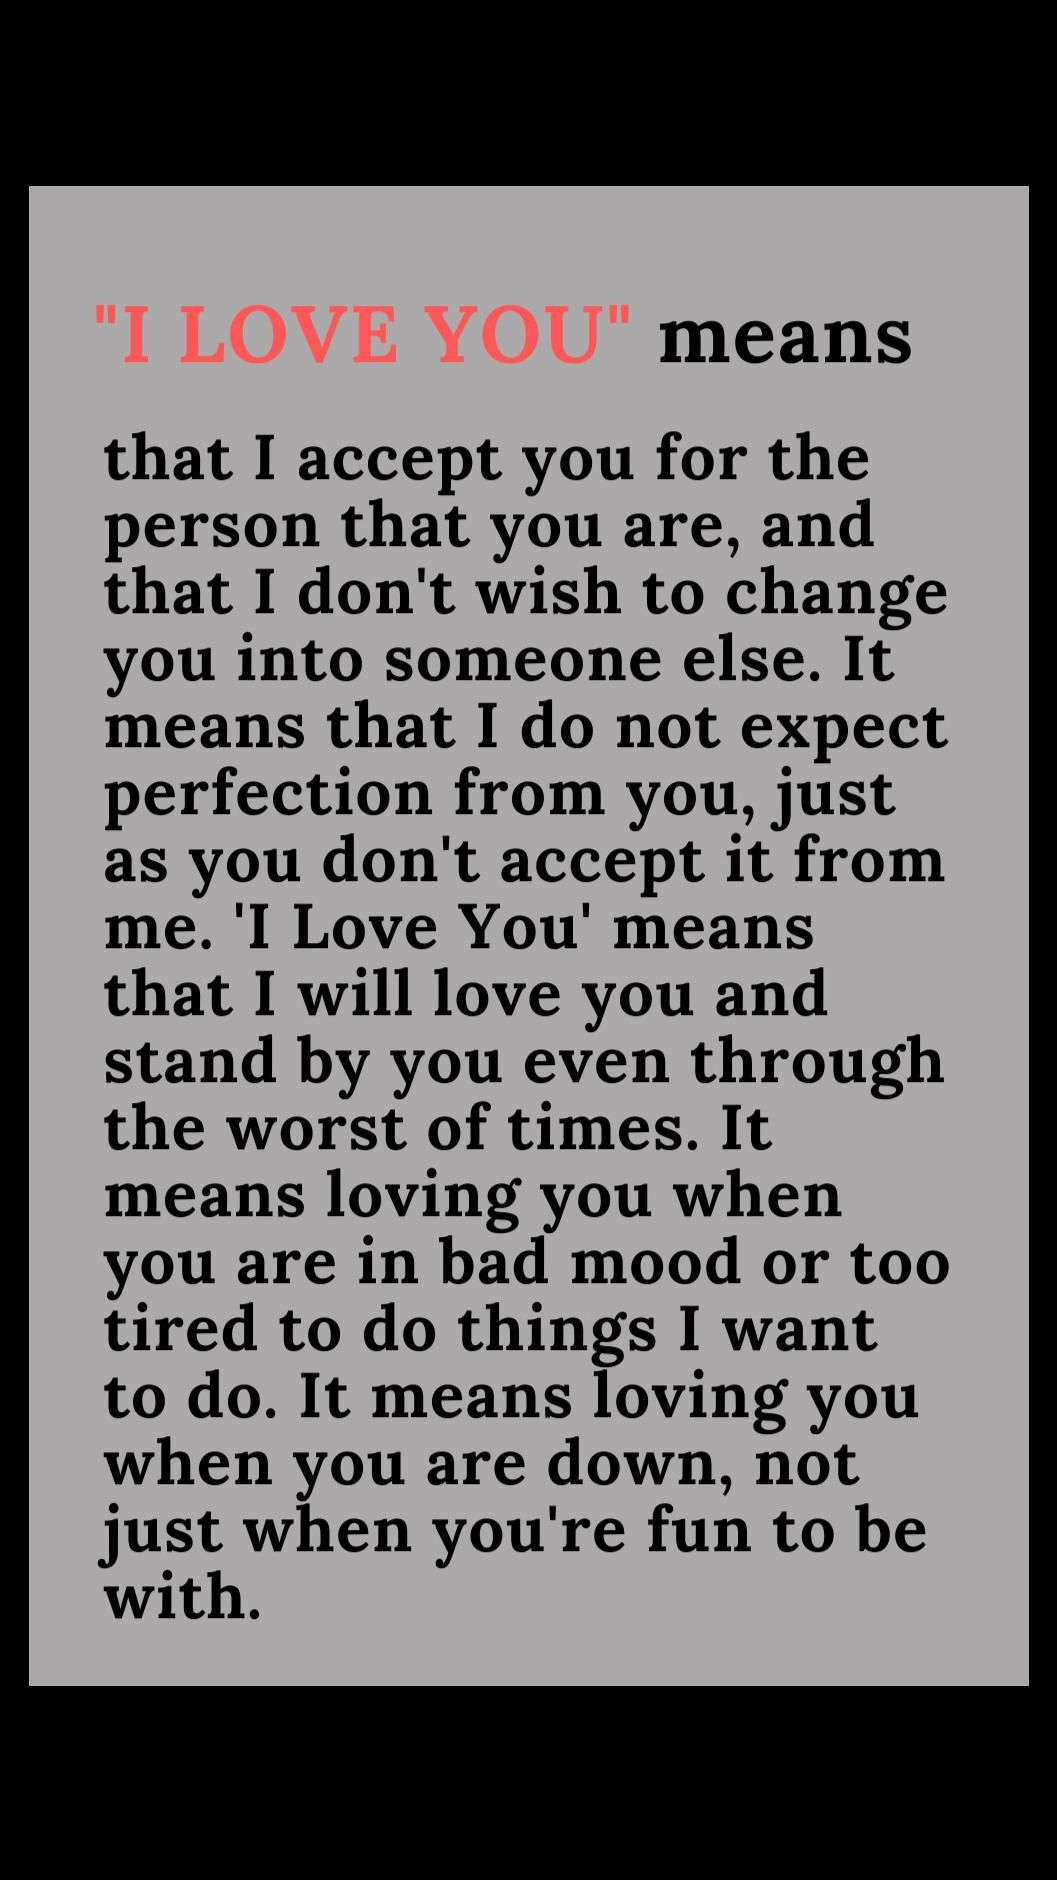 Daily love quotes